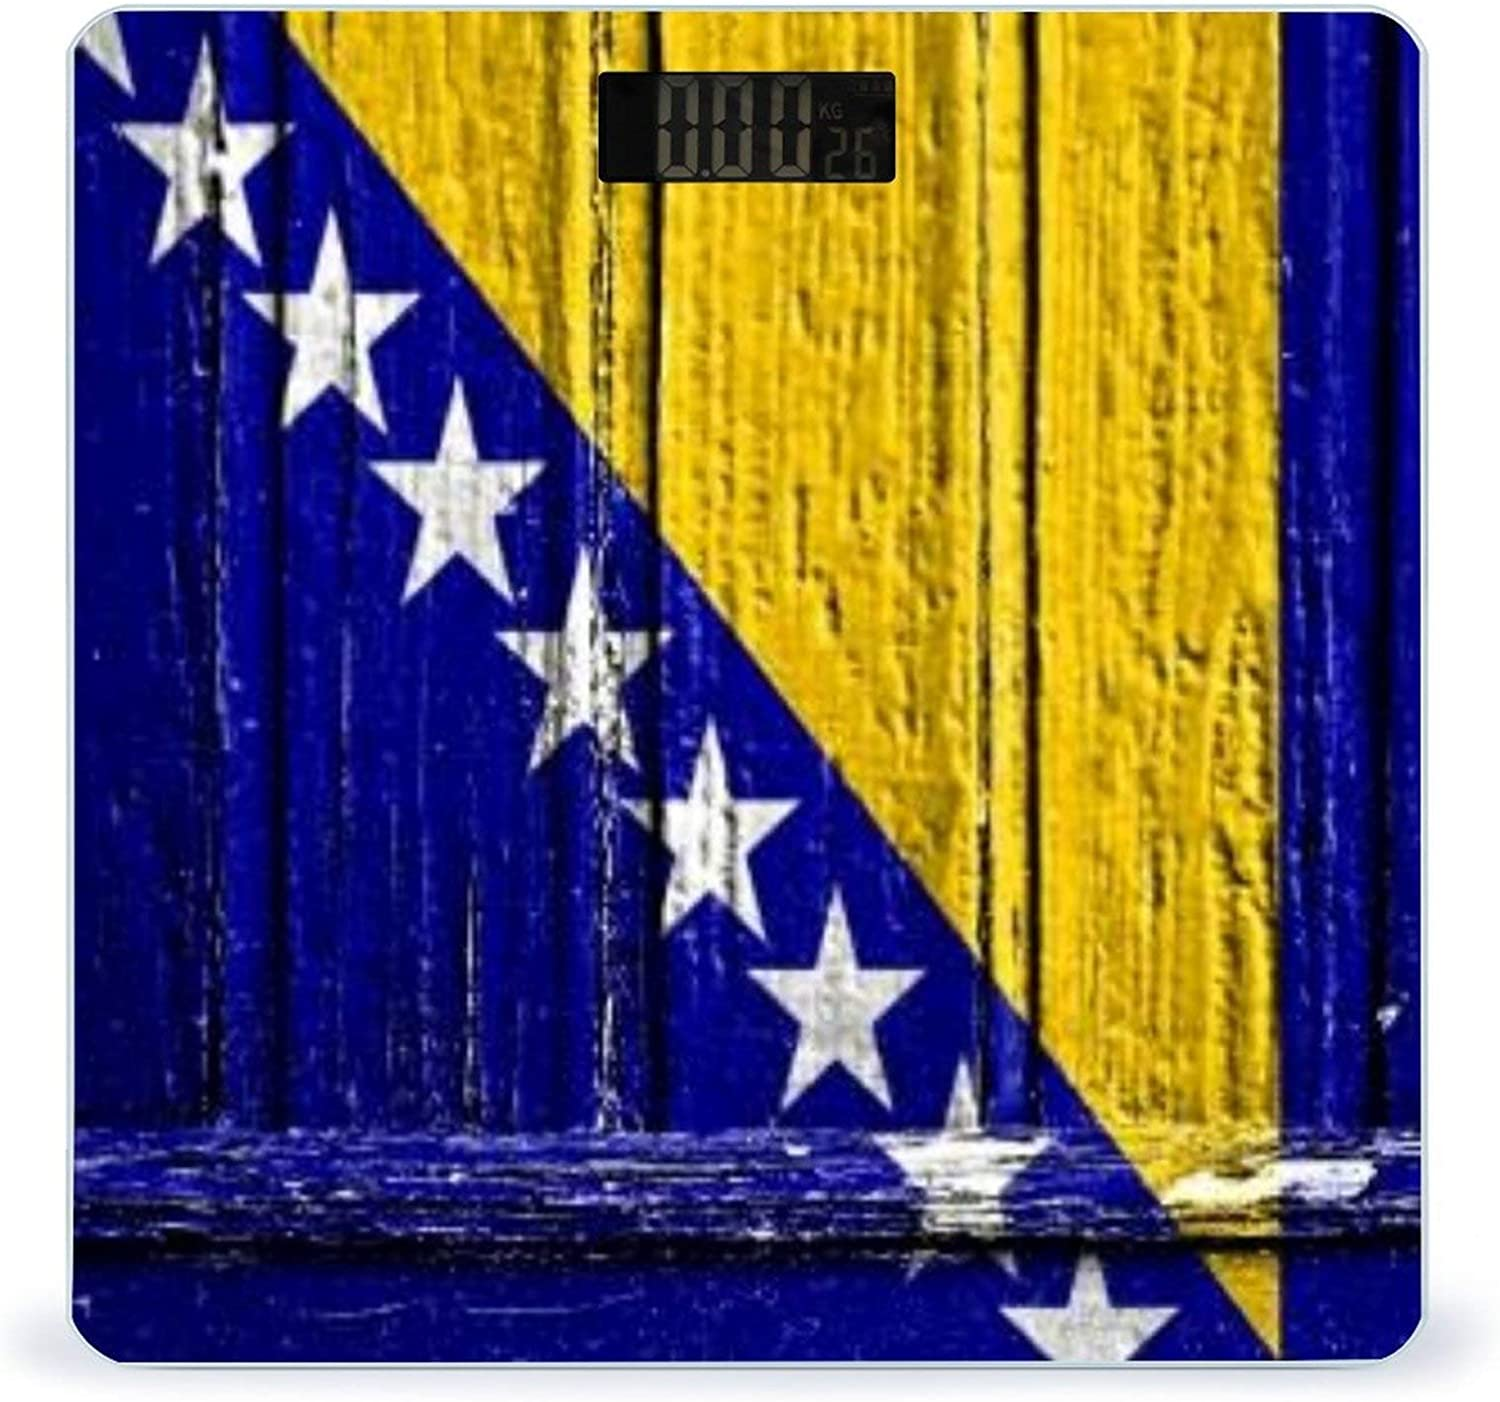 CHUFZSD Flag of Bosnia Wholesale and Herzegovina H Max 89% OFF Wooden On Painted Frame